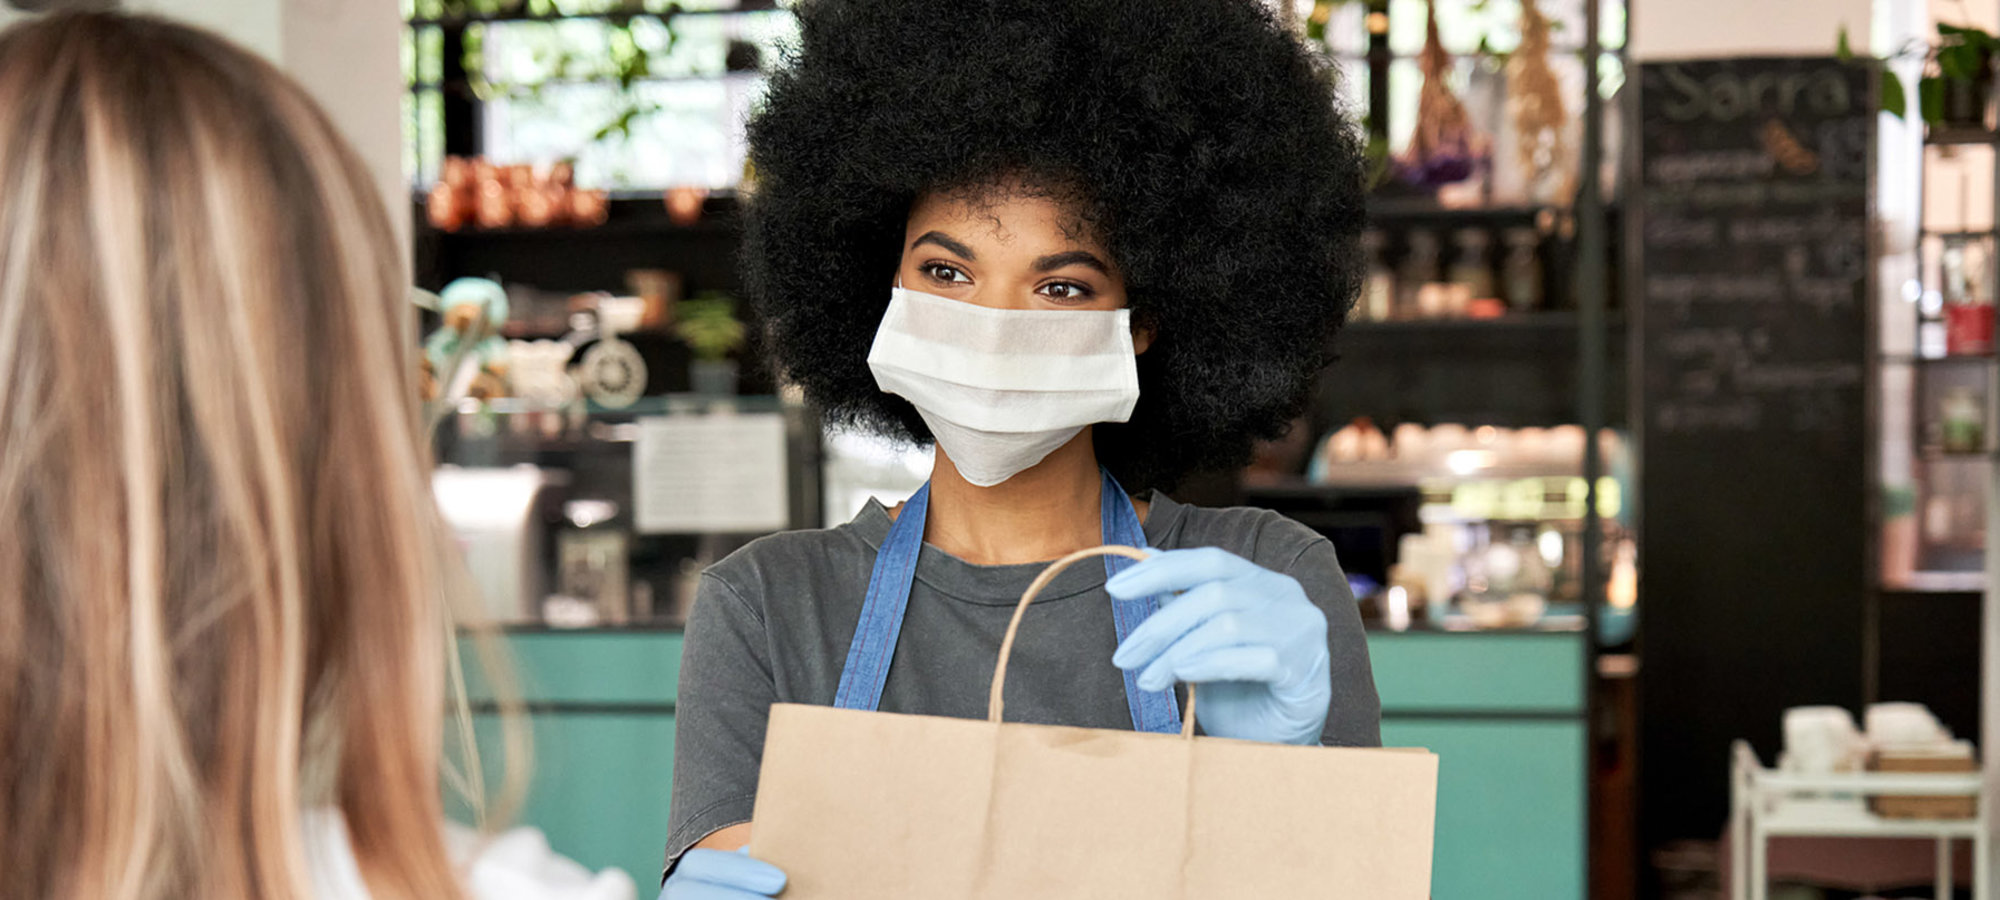 Employee wearing mask handing bag to customer